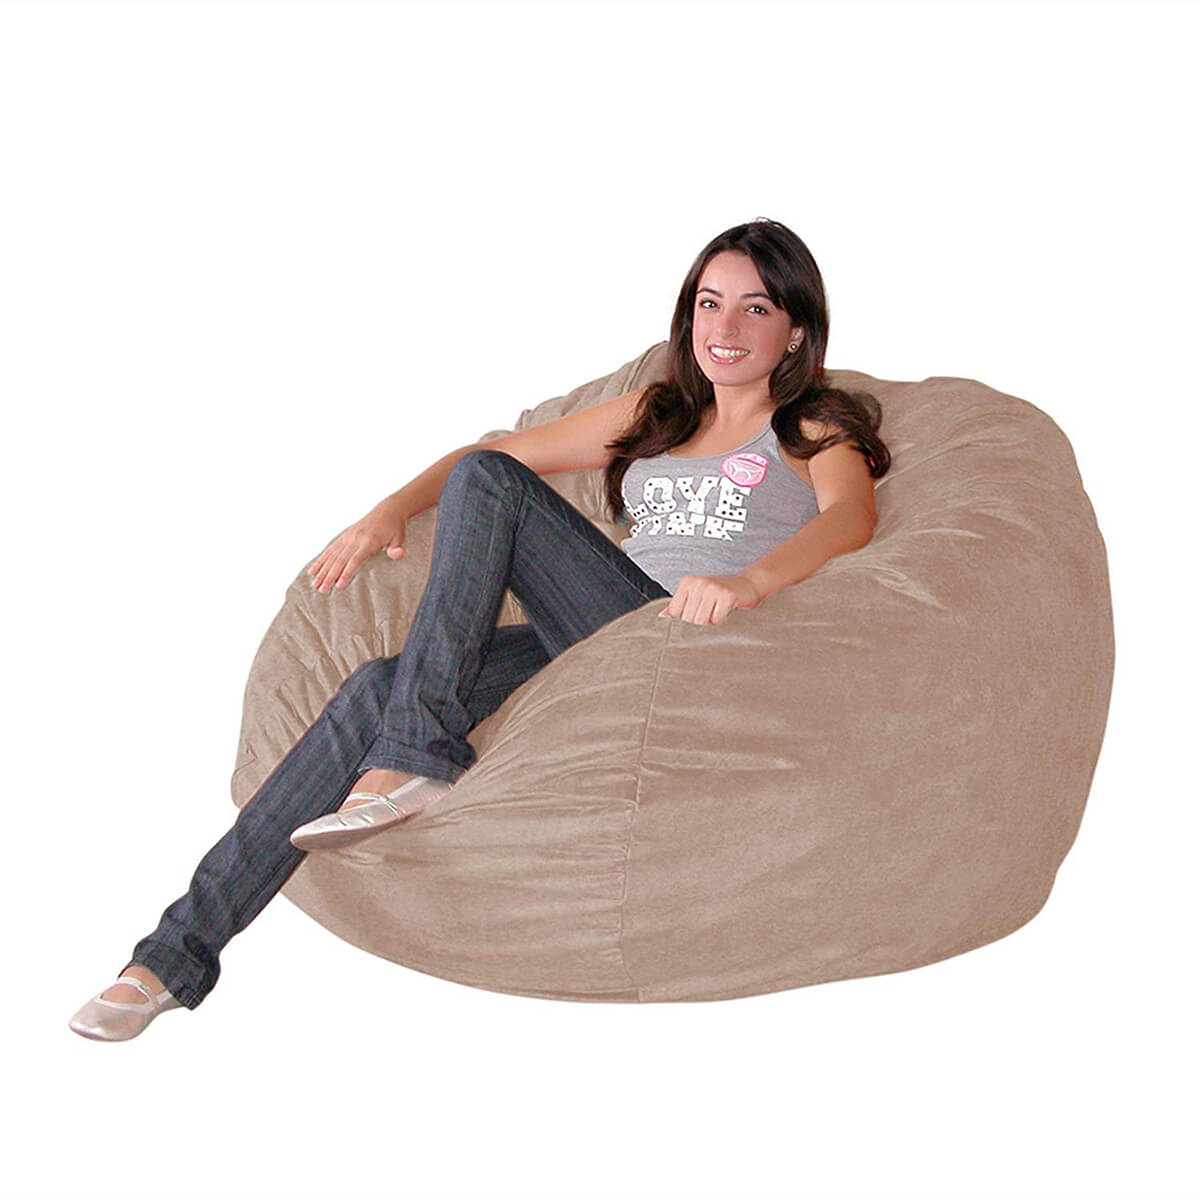 Cozy Sack 3-Foot Medium Bean Bag Chair in Cinnabar